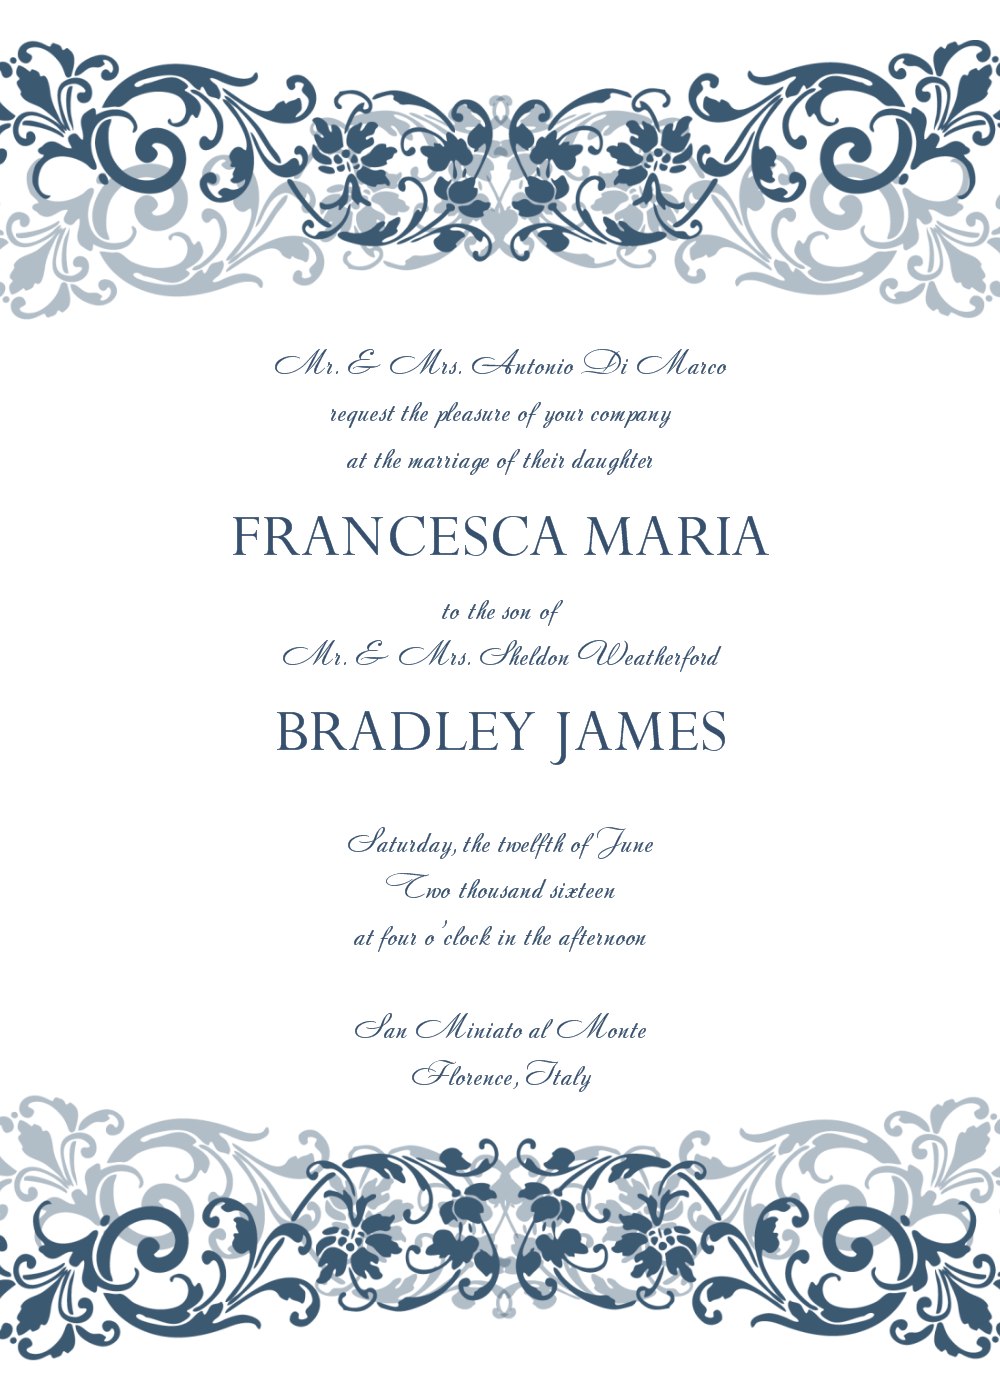 Elegant Wedding Invitation Templates Of Wedding Invitation Designed ...